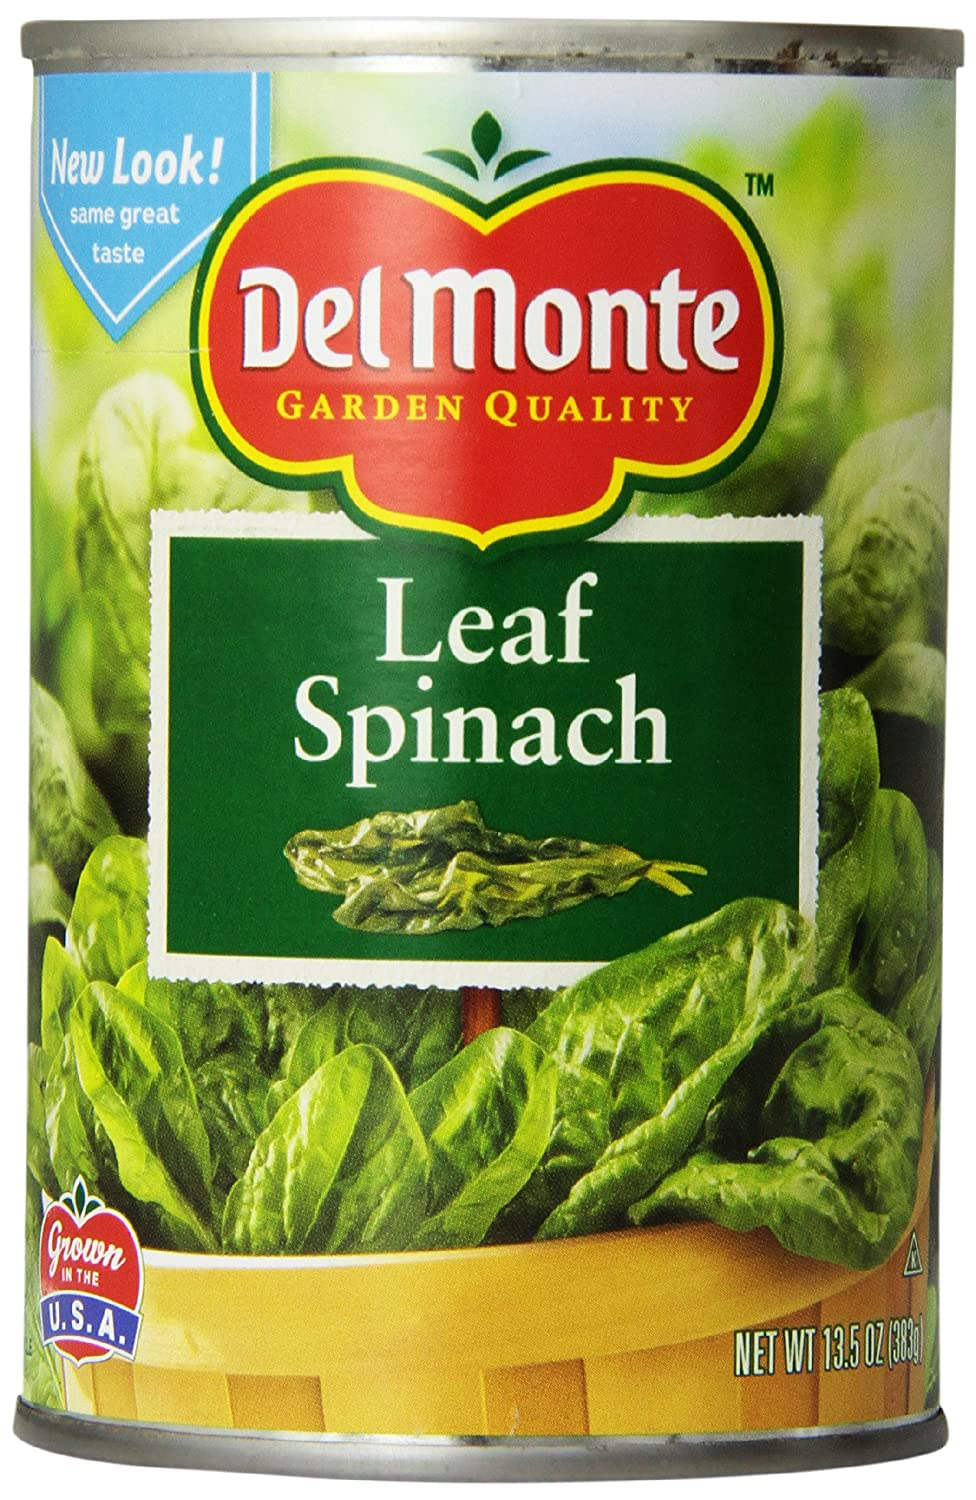 Watch How to Use Your Canned Spinach video